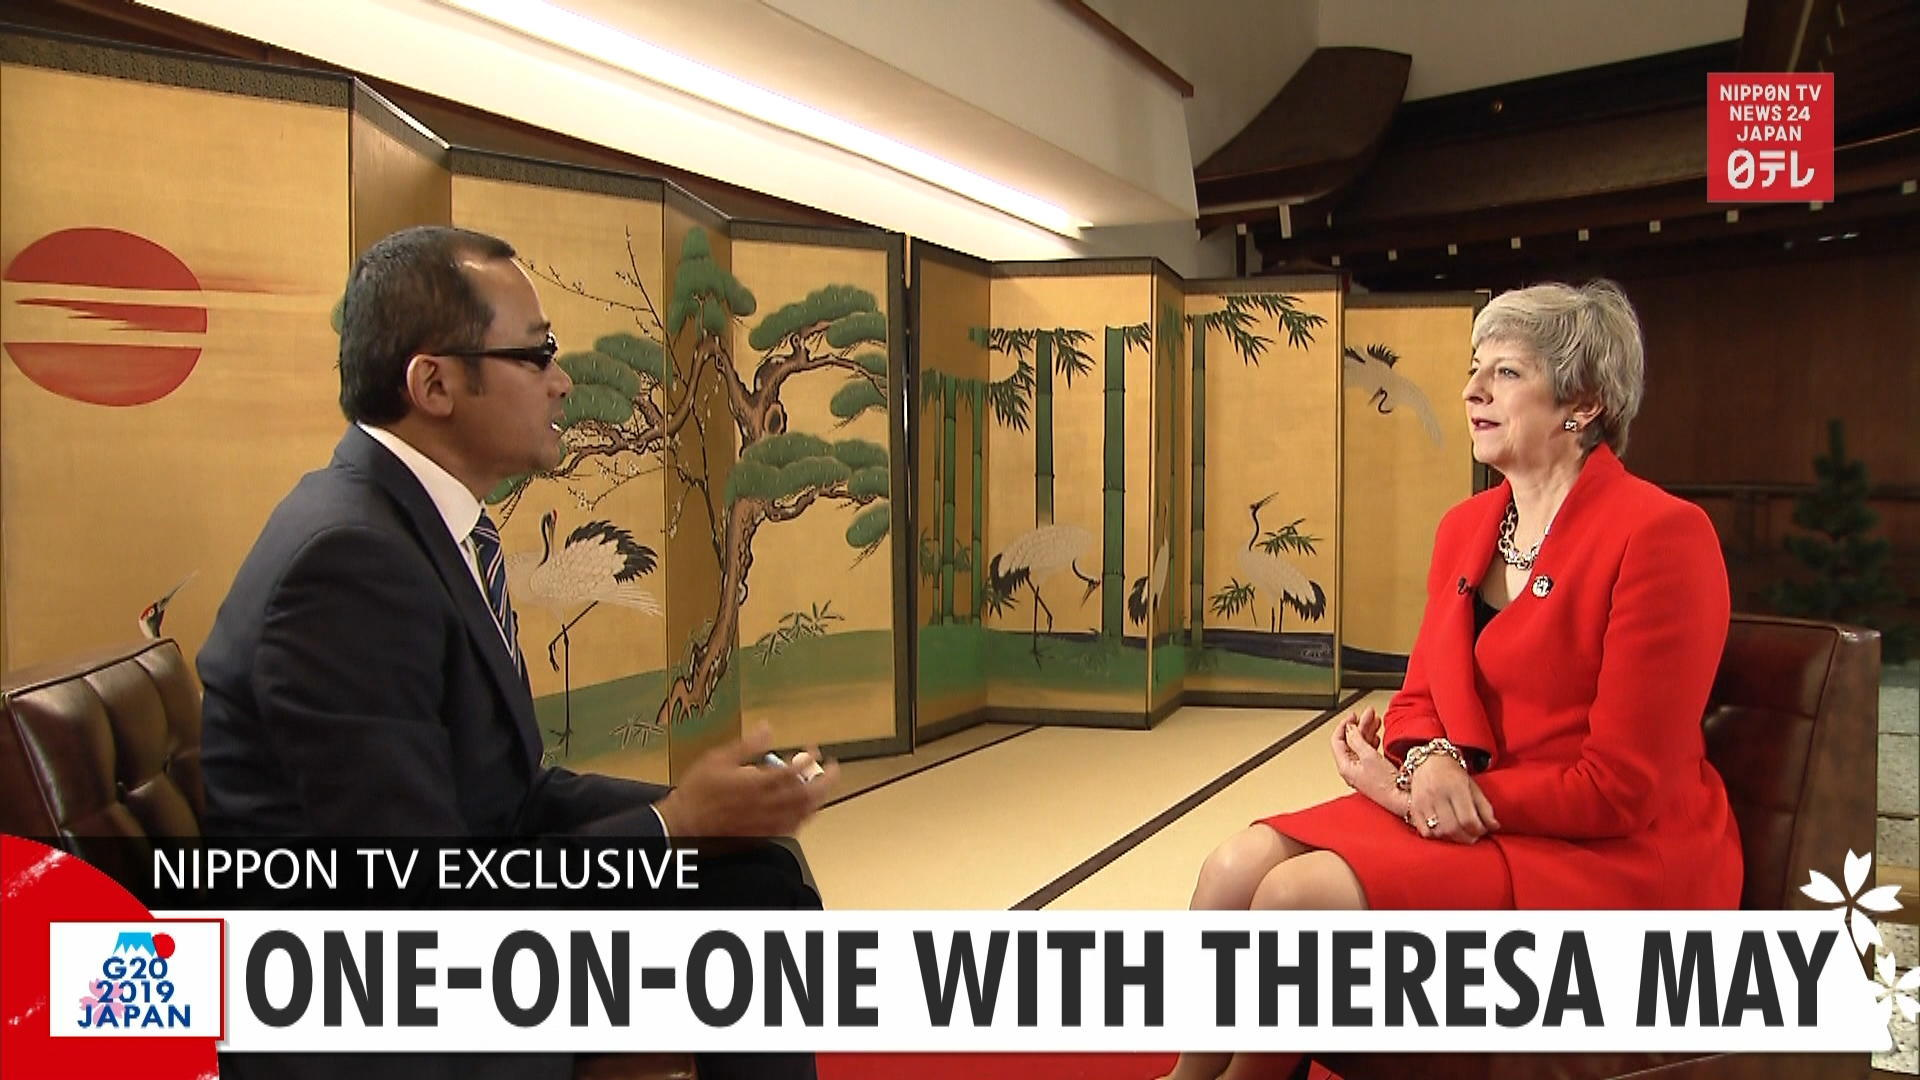 G20: Exclusive interview with Theresa May